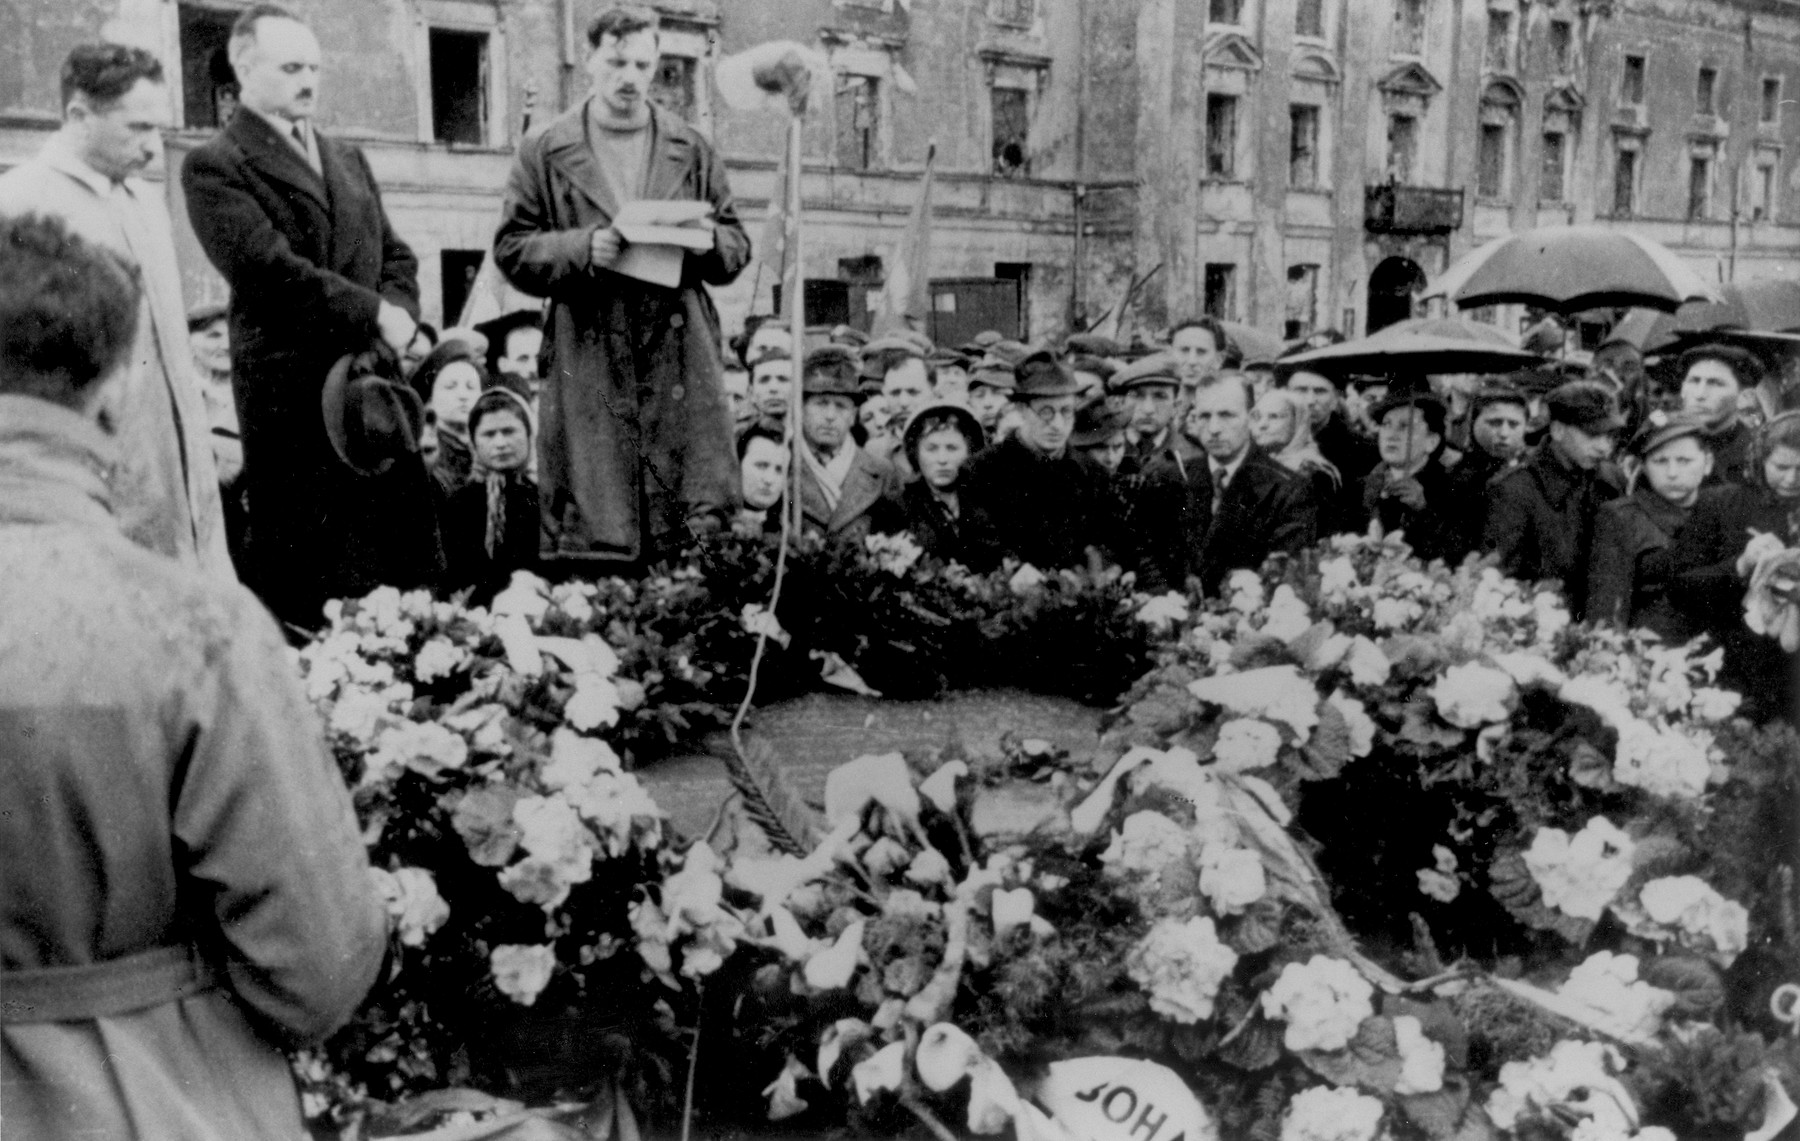 Yitzhak Zuckerman delivers a speech at a ceremony in front of the ruins of the former headquarters of the Warsaw ghetto Jewish council [probably to mark the fourth anniversary of the Warsaw ghetto uprising].  Also pictured is Dr. Adolf Berman (standing next to Zuckerman).